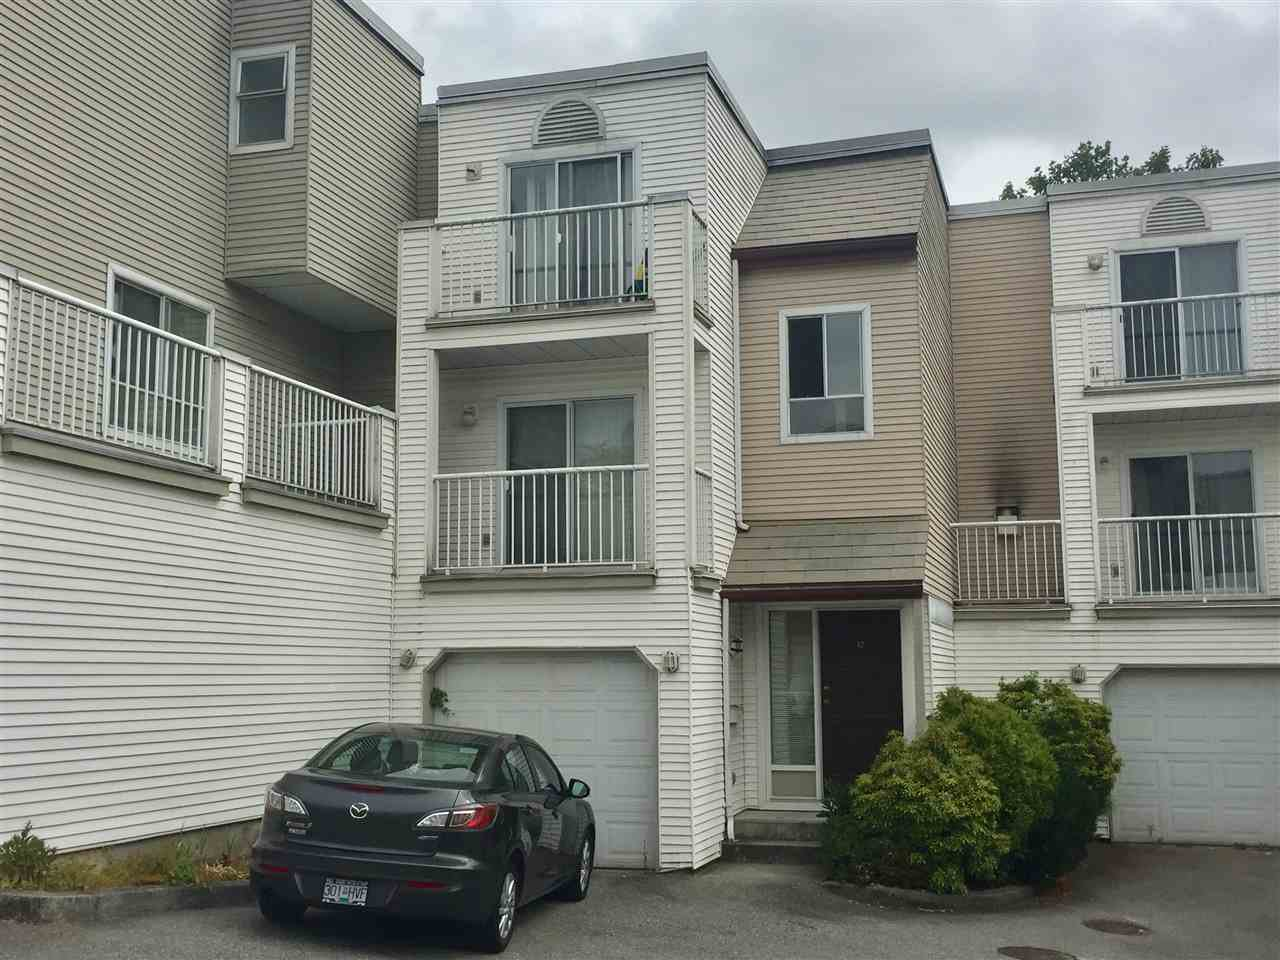 Main Photo: 12 1850 HARBOUR STREET in : Citadel PQ Townhouse for sale : MLS®# R2198105